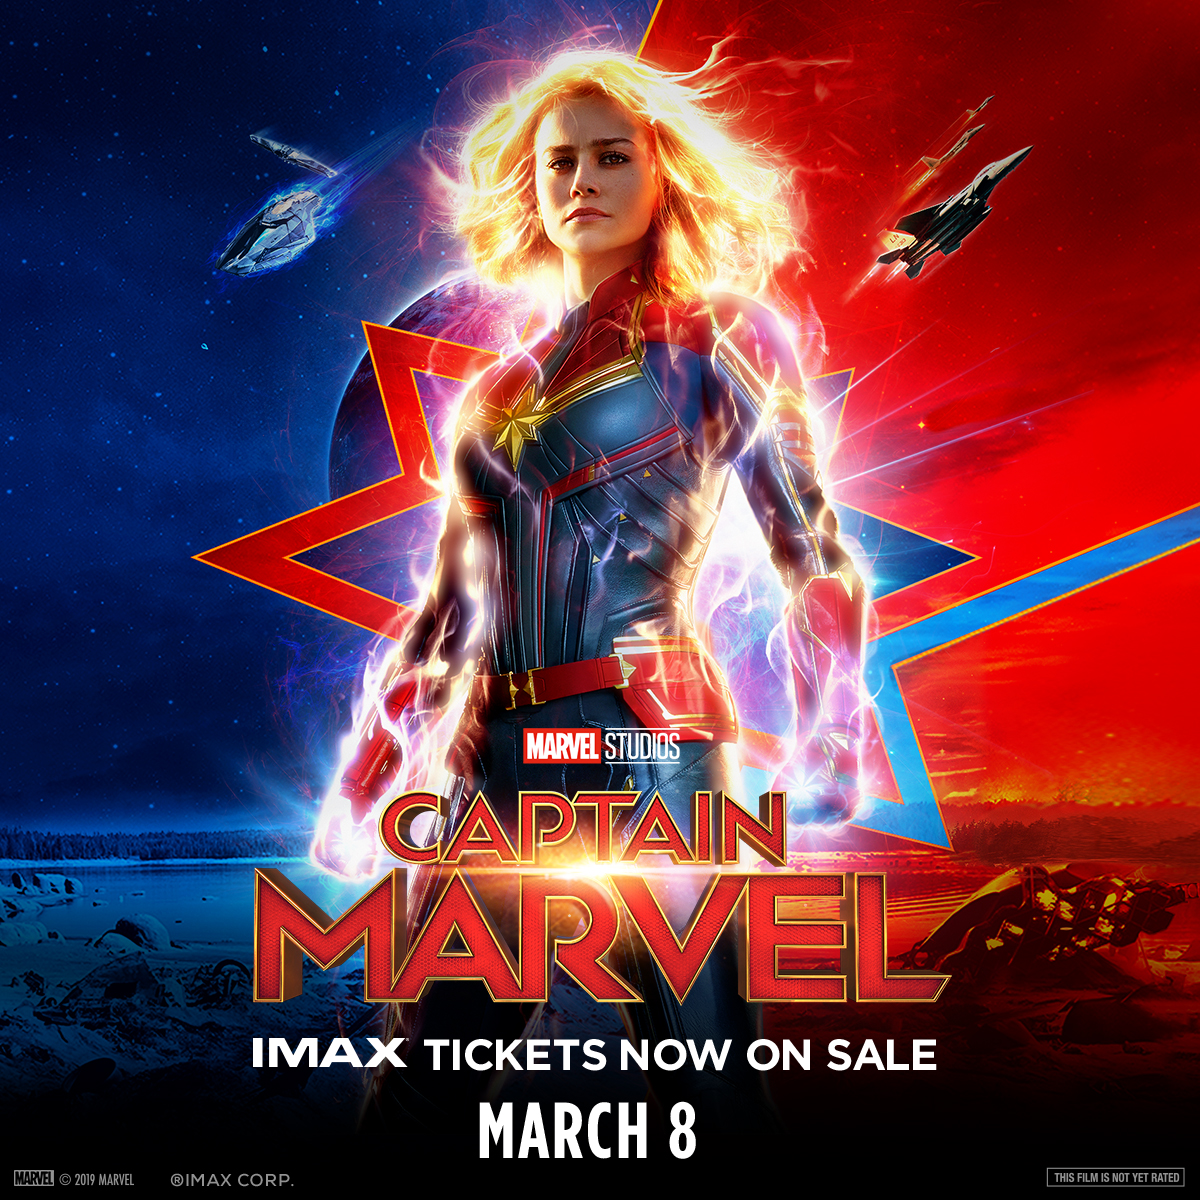 Captain Marvel The Imax Experience Challenger Learning Center Of Tallahassee